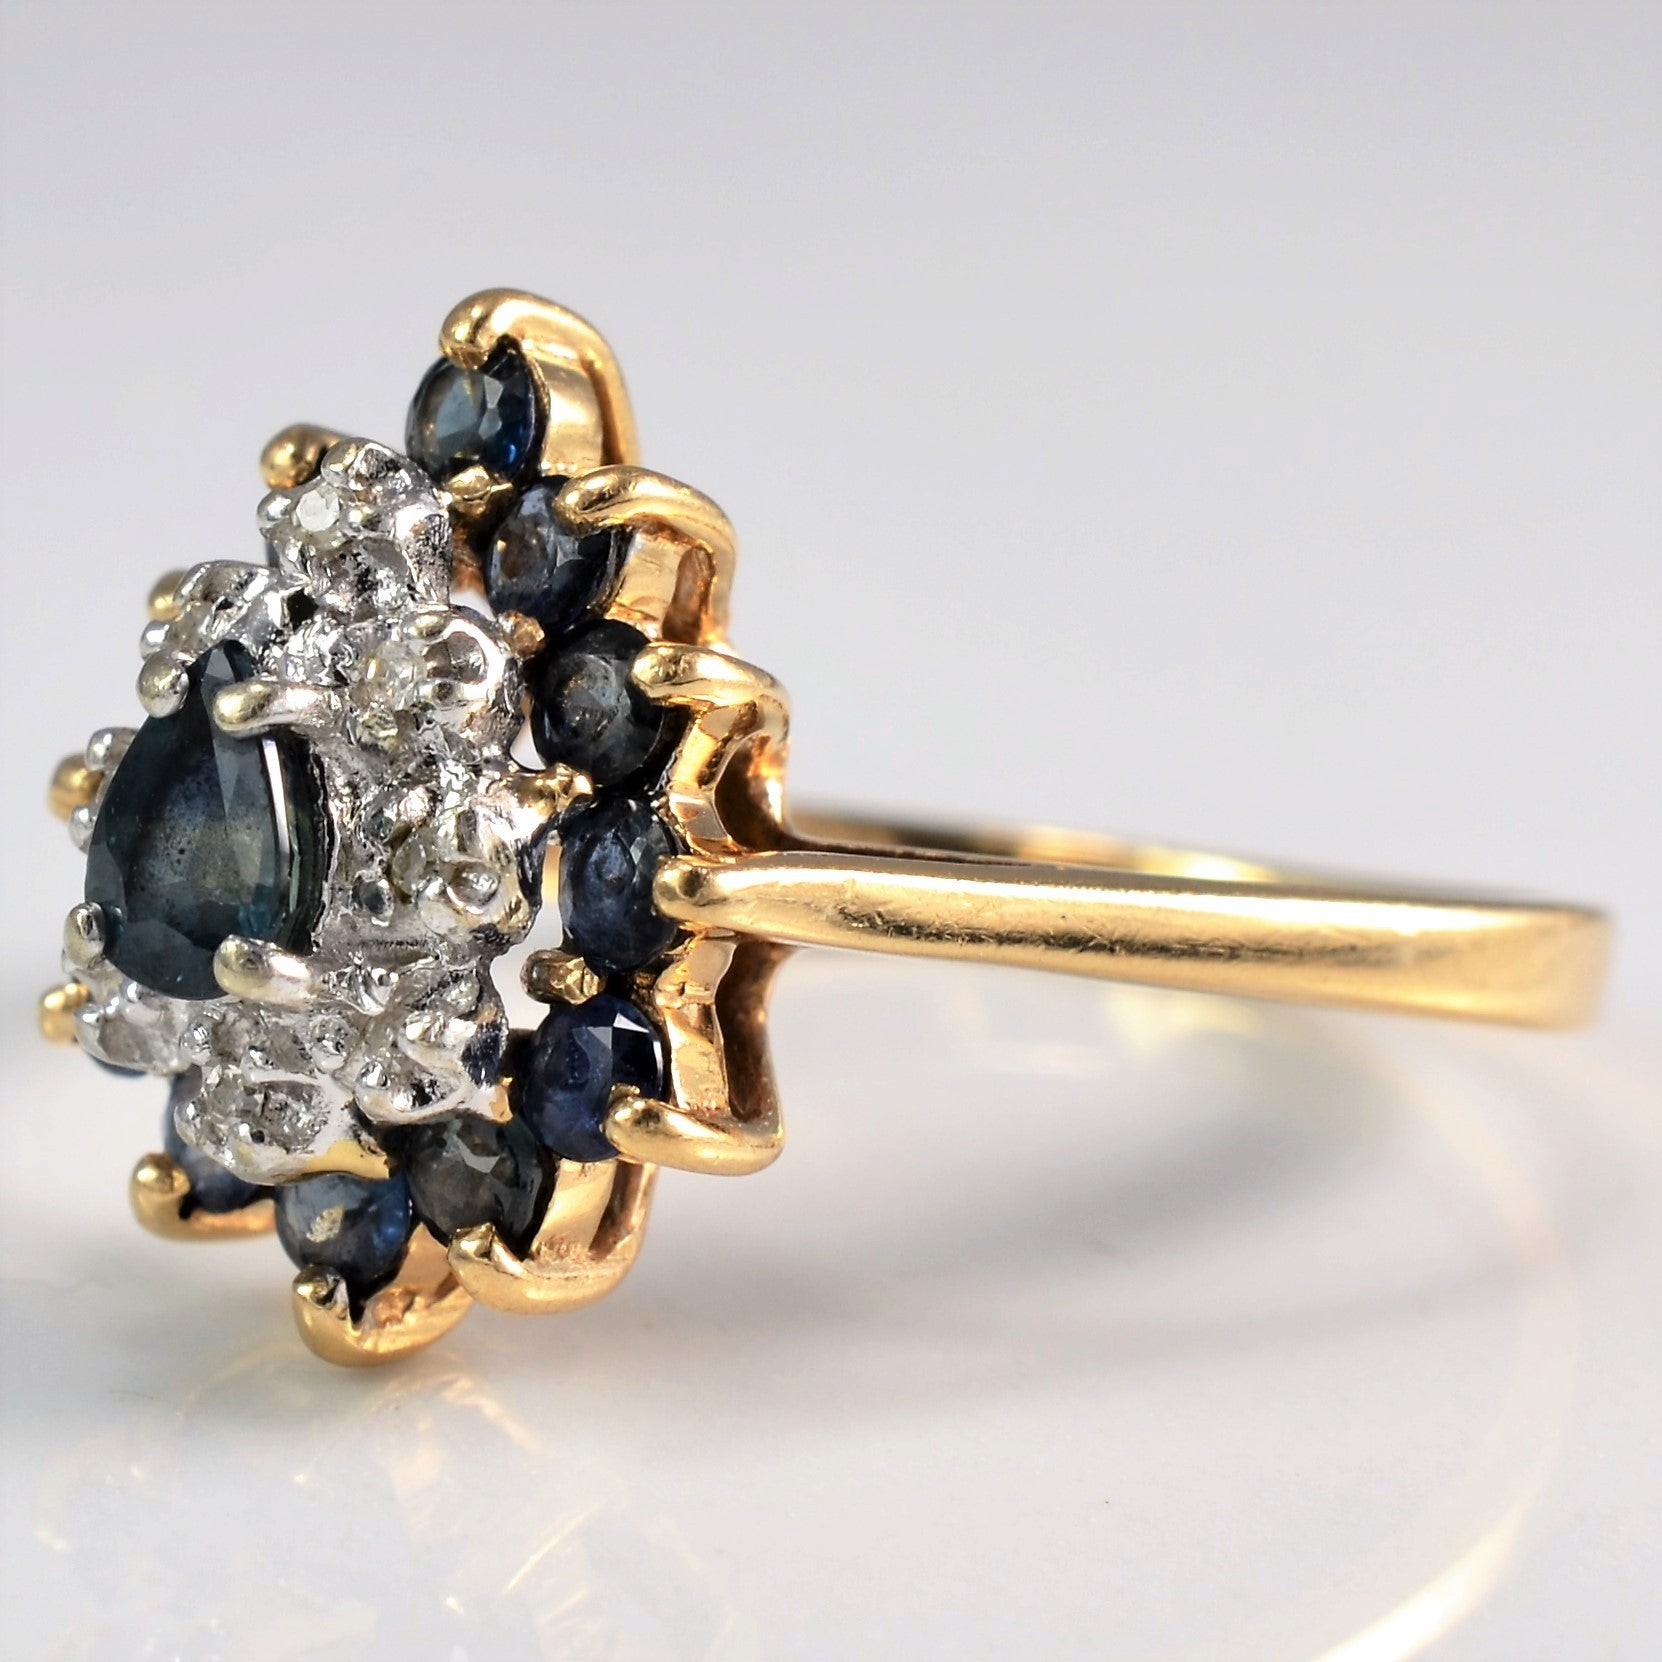 Multi Stone Pear Shaped Cocktail Ring | 0.04 ctw, SZ 7.5 |